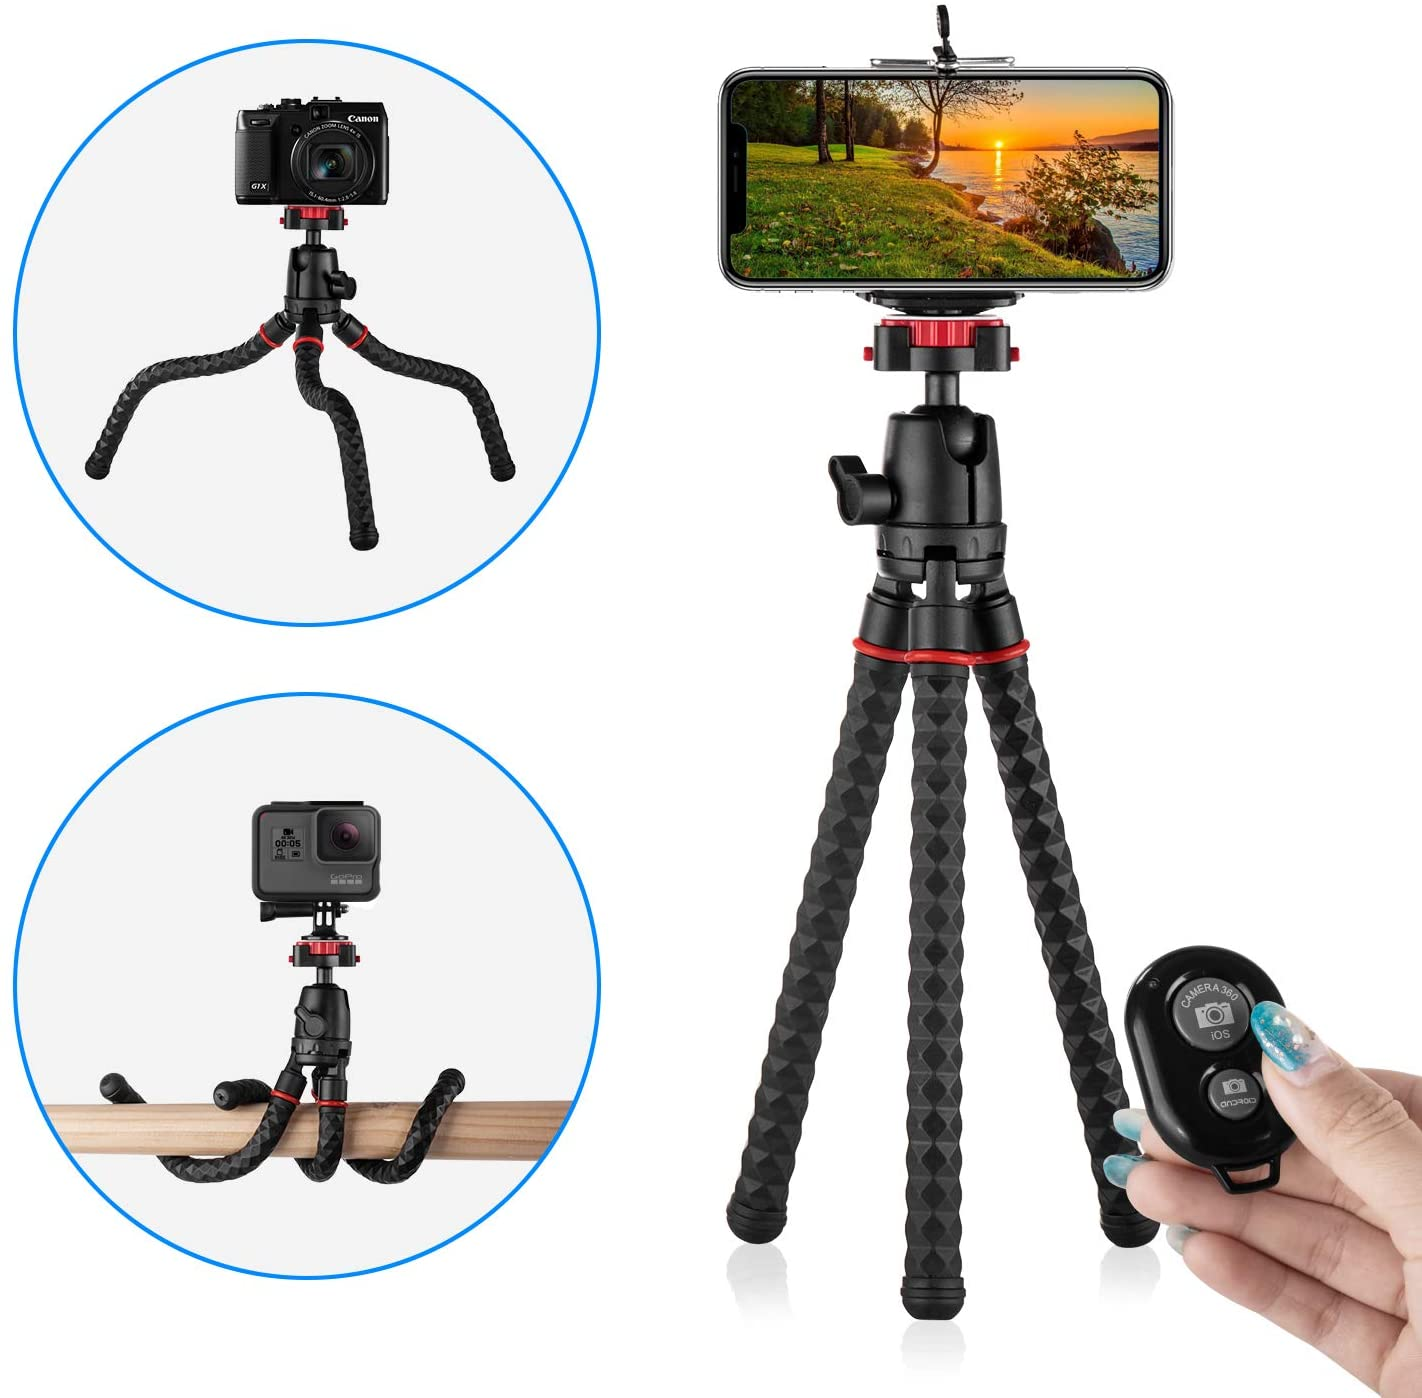 Phone Tripod with Wireless Remote Eco Moda 360 Degree Rotation Flexible Portable Octopus Travel Small Tripod for iPhone Android Phone Camera Samsung Smartphone Sports Action Camera